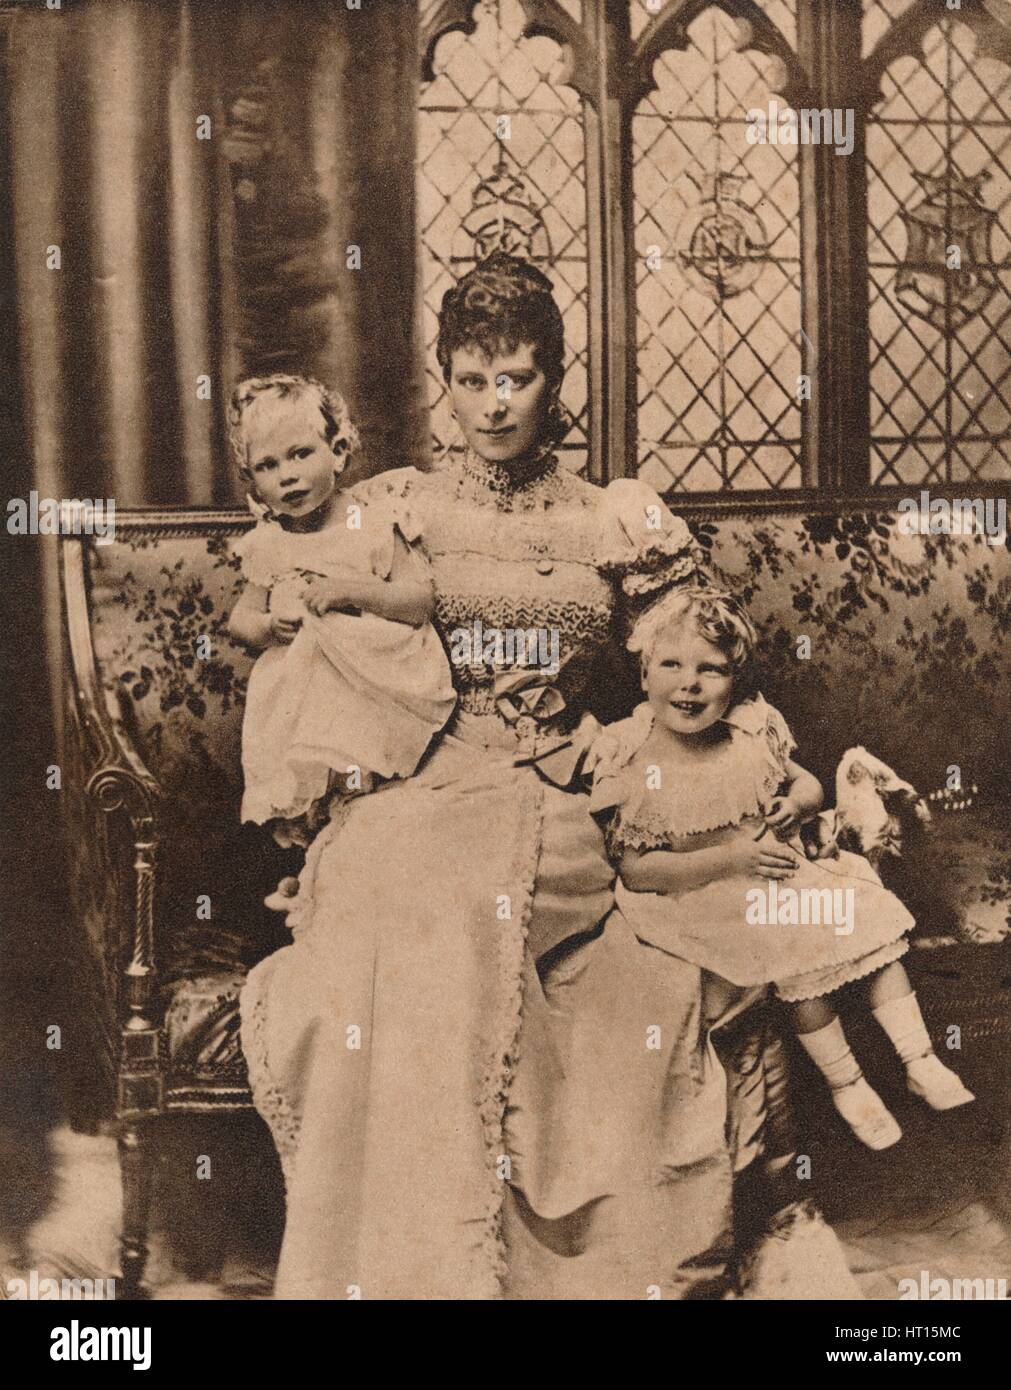 The Duchess of York with her two sons, Princes Edward and Albert, c1897 (1935). Artist: Unknown. - Stock Image